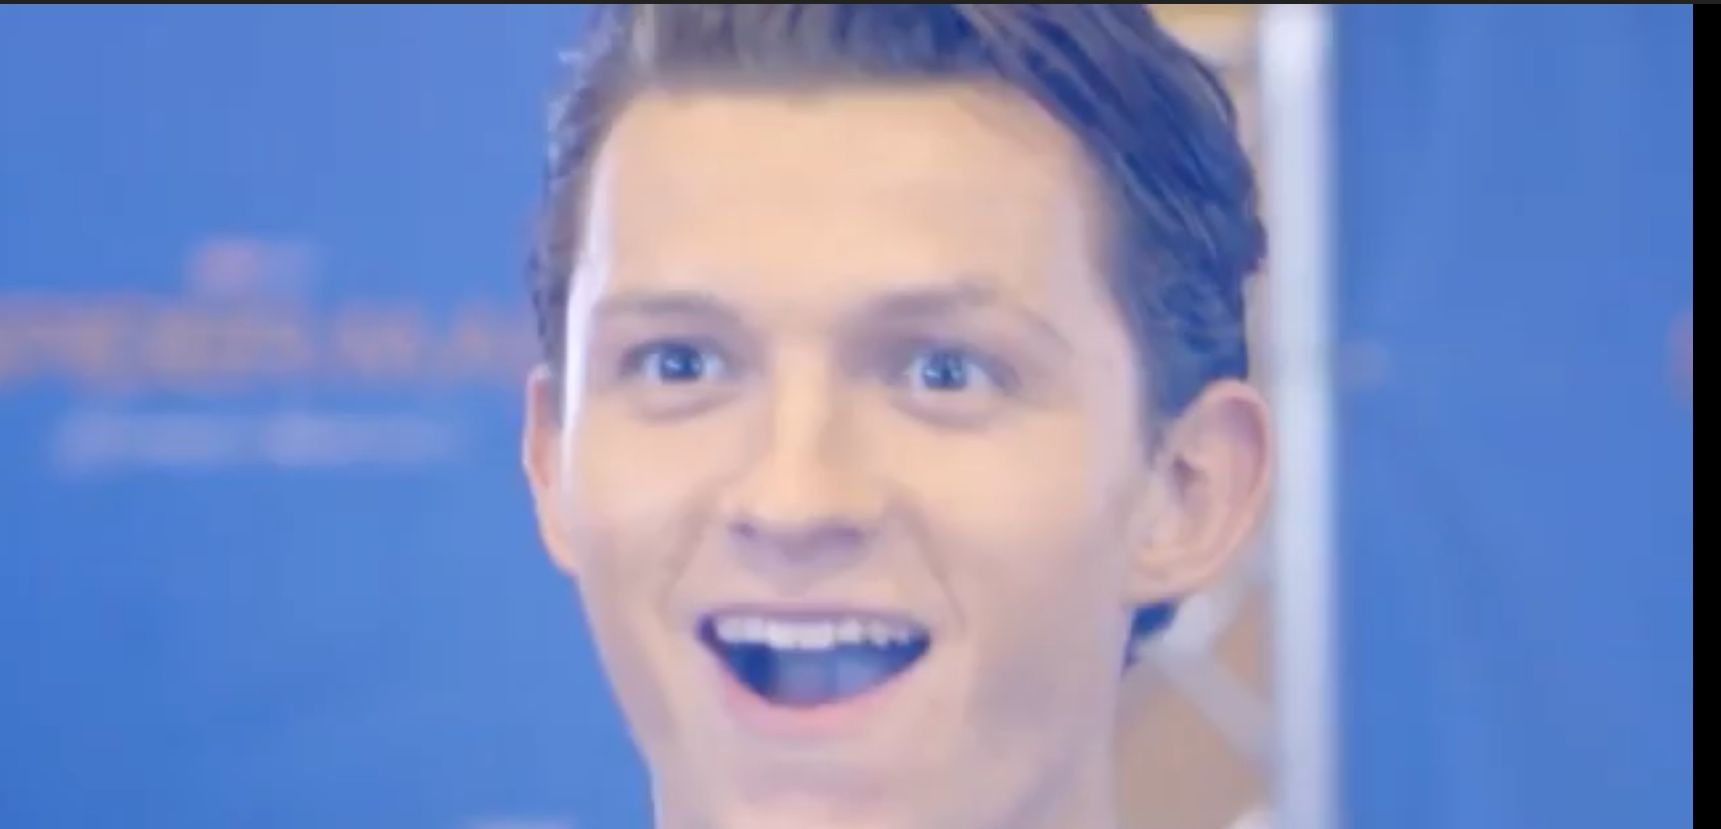 No one can beat that smile Tom holland, Tom holland